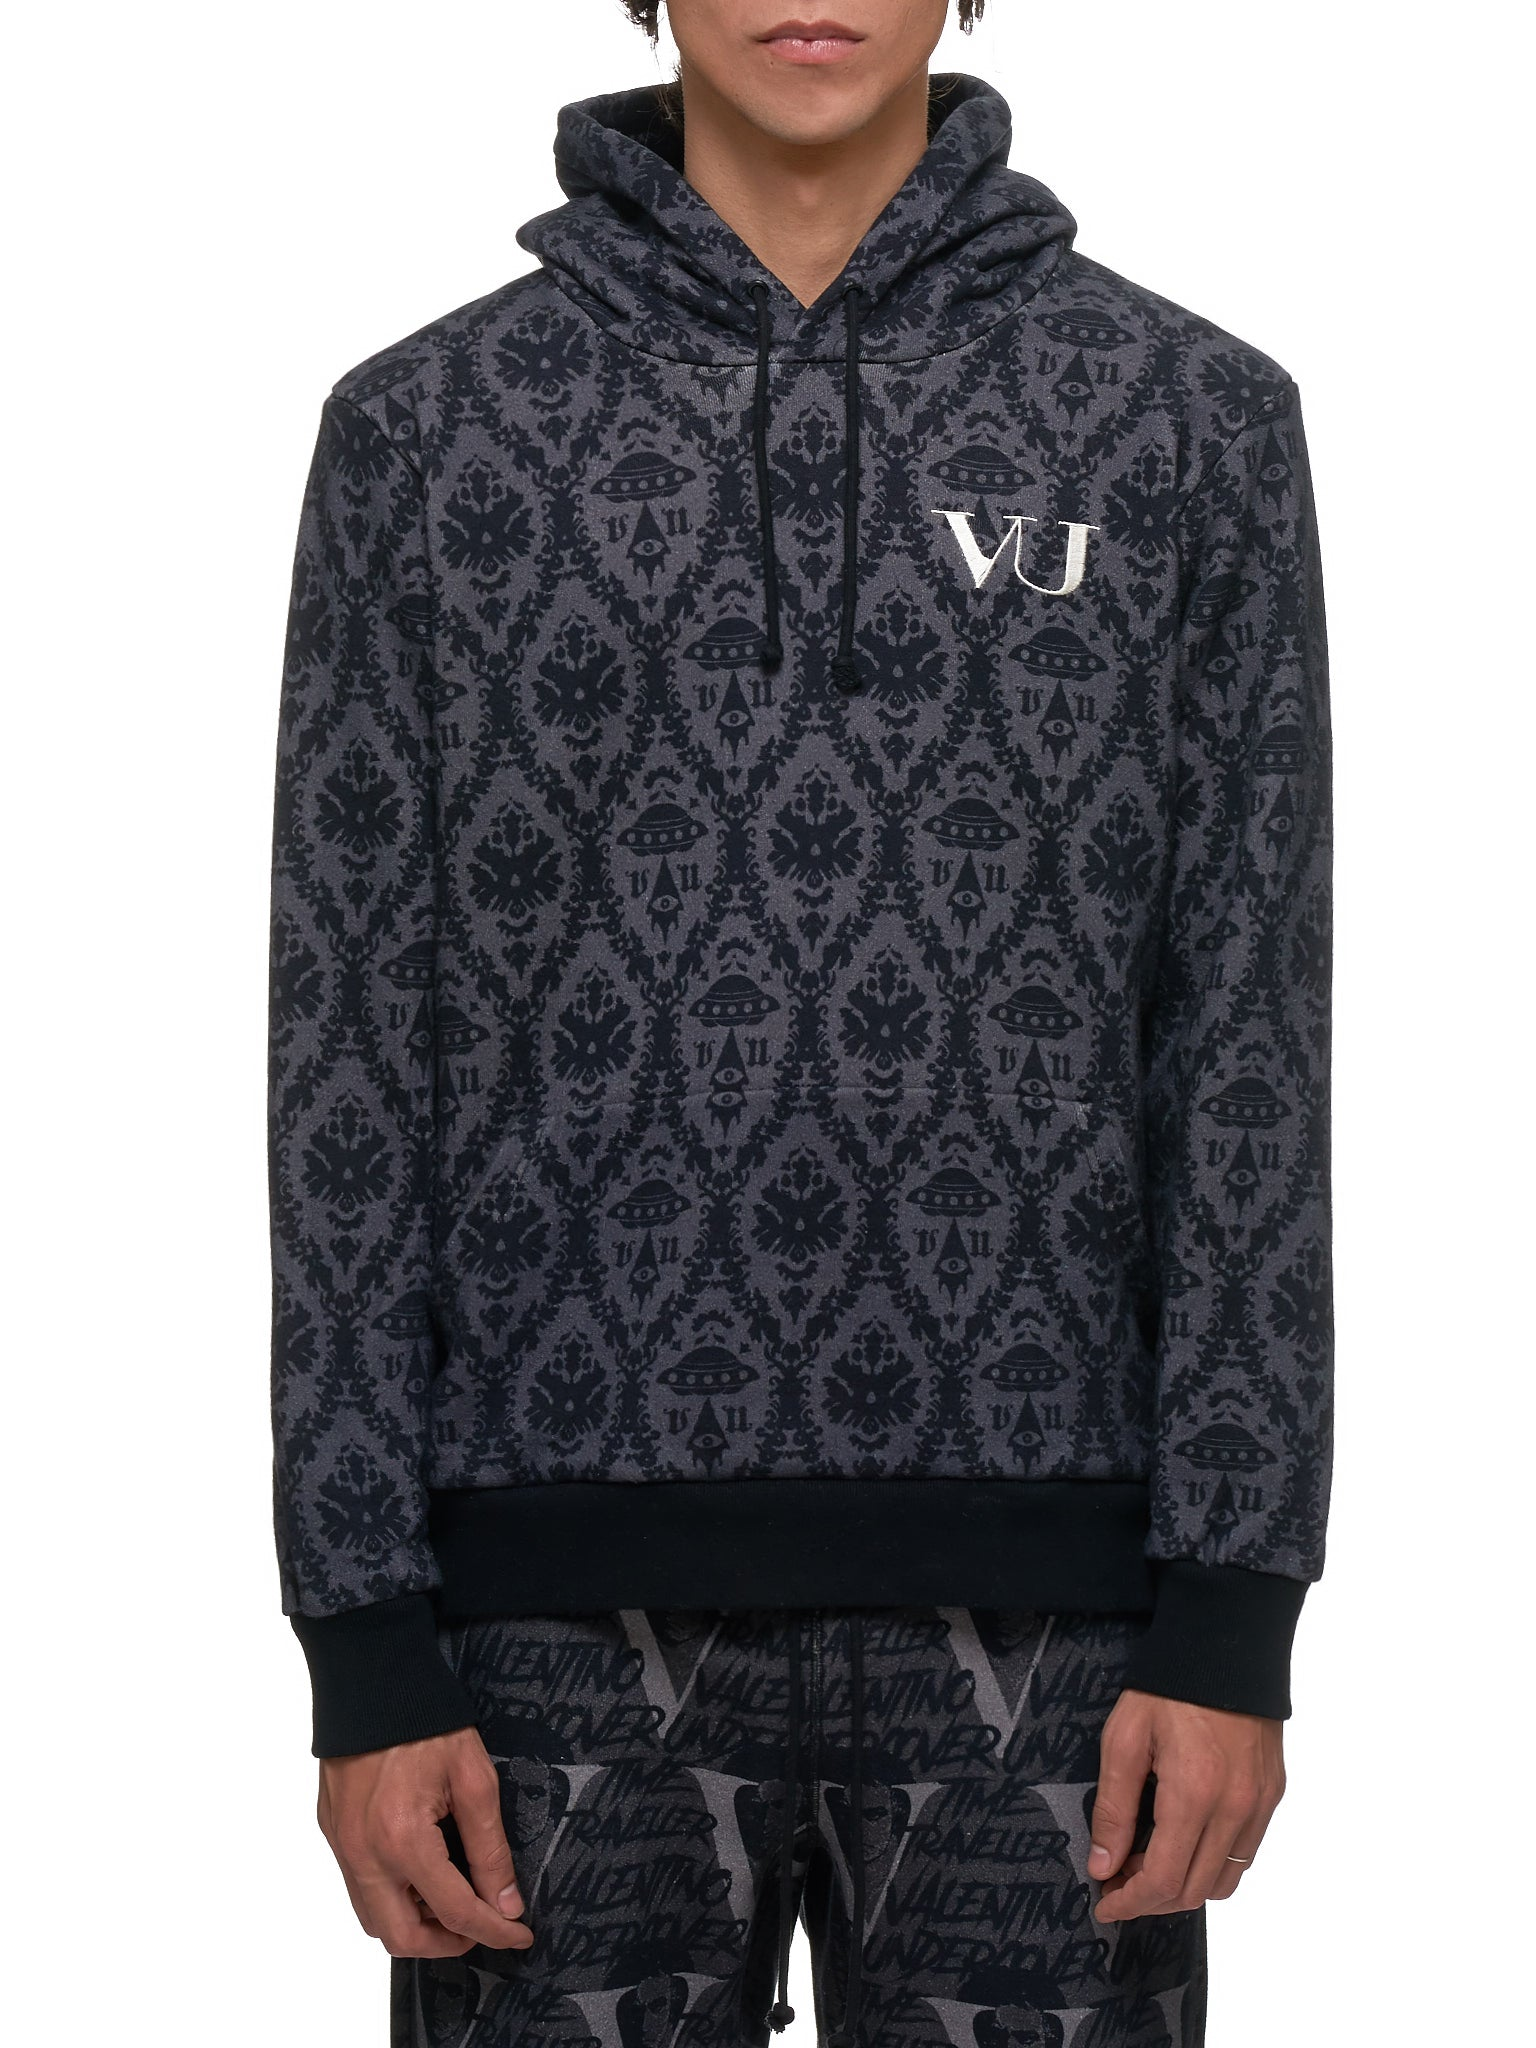 Undercover x Valentino hoodie - Hlorenzo Front